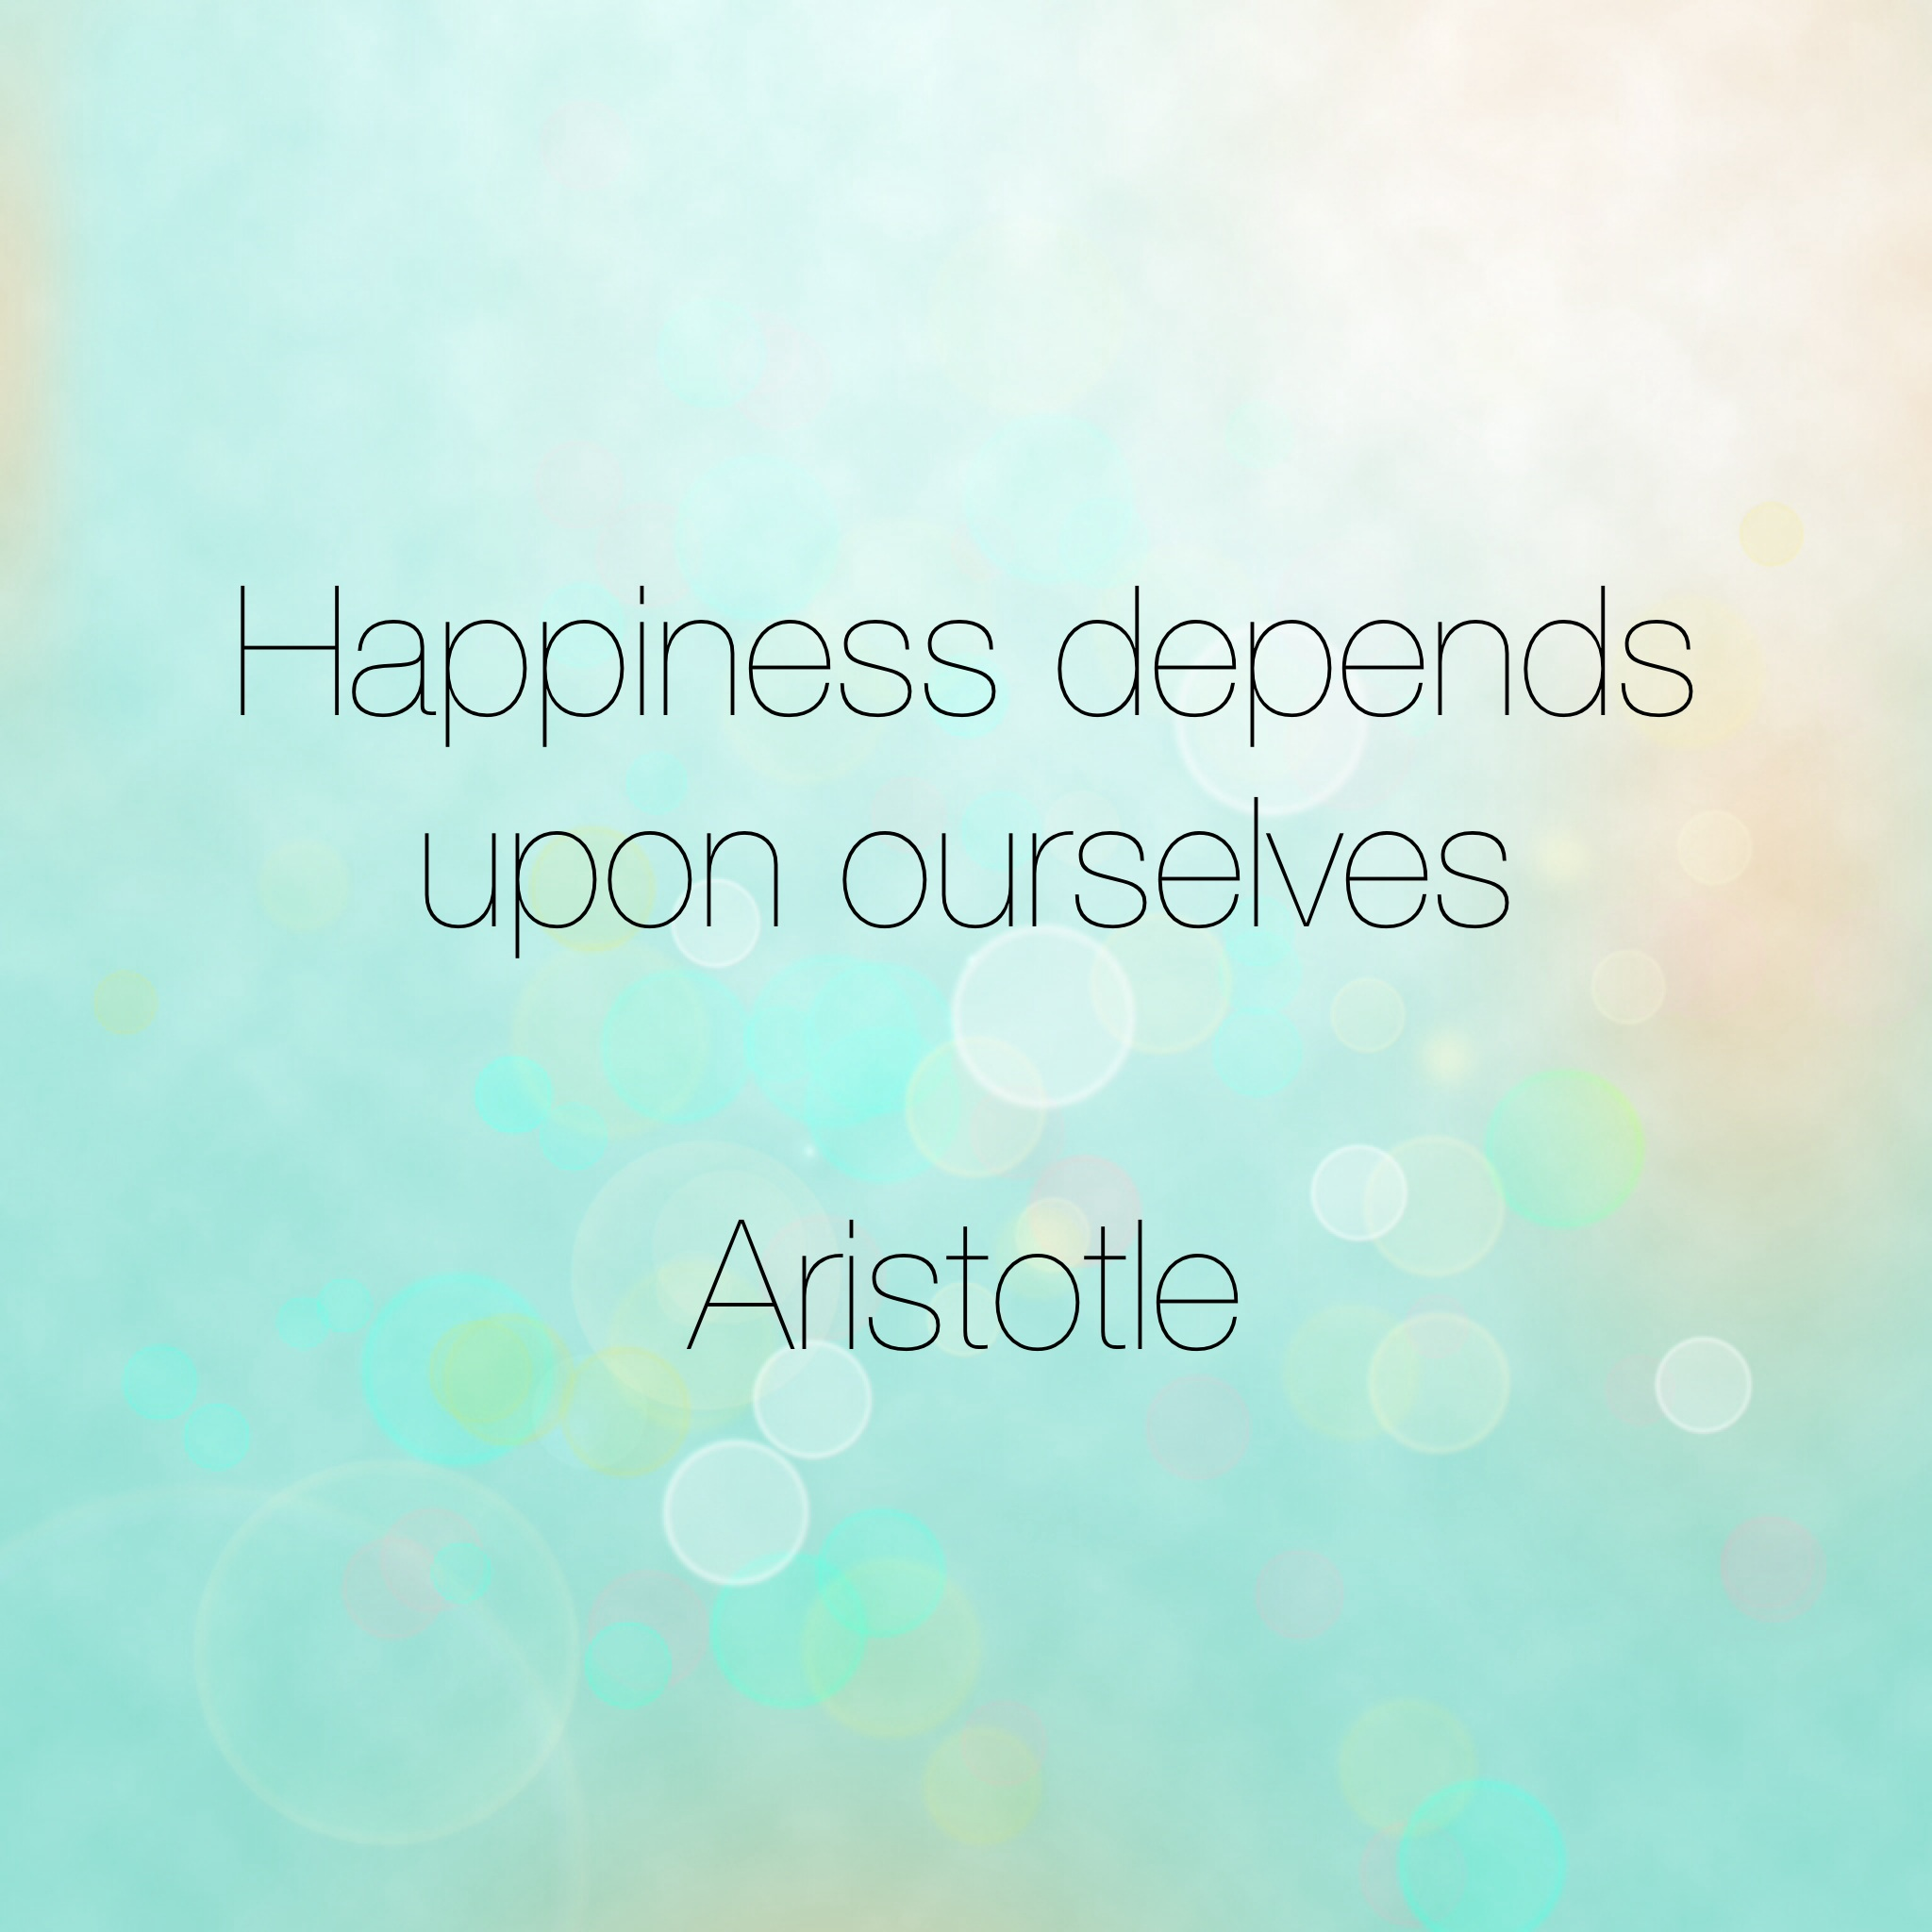 essay happiness depends upon ourselves